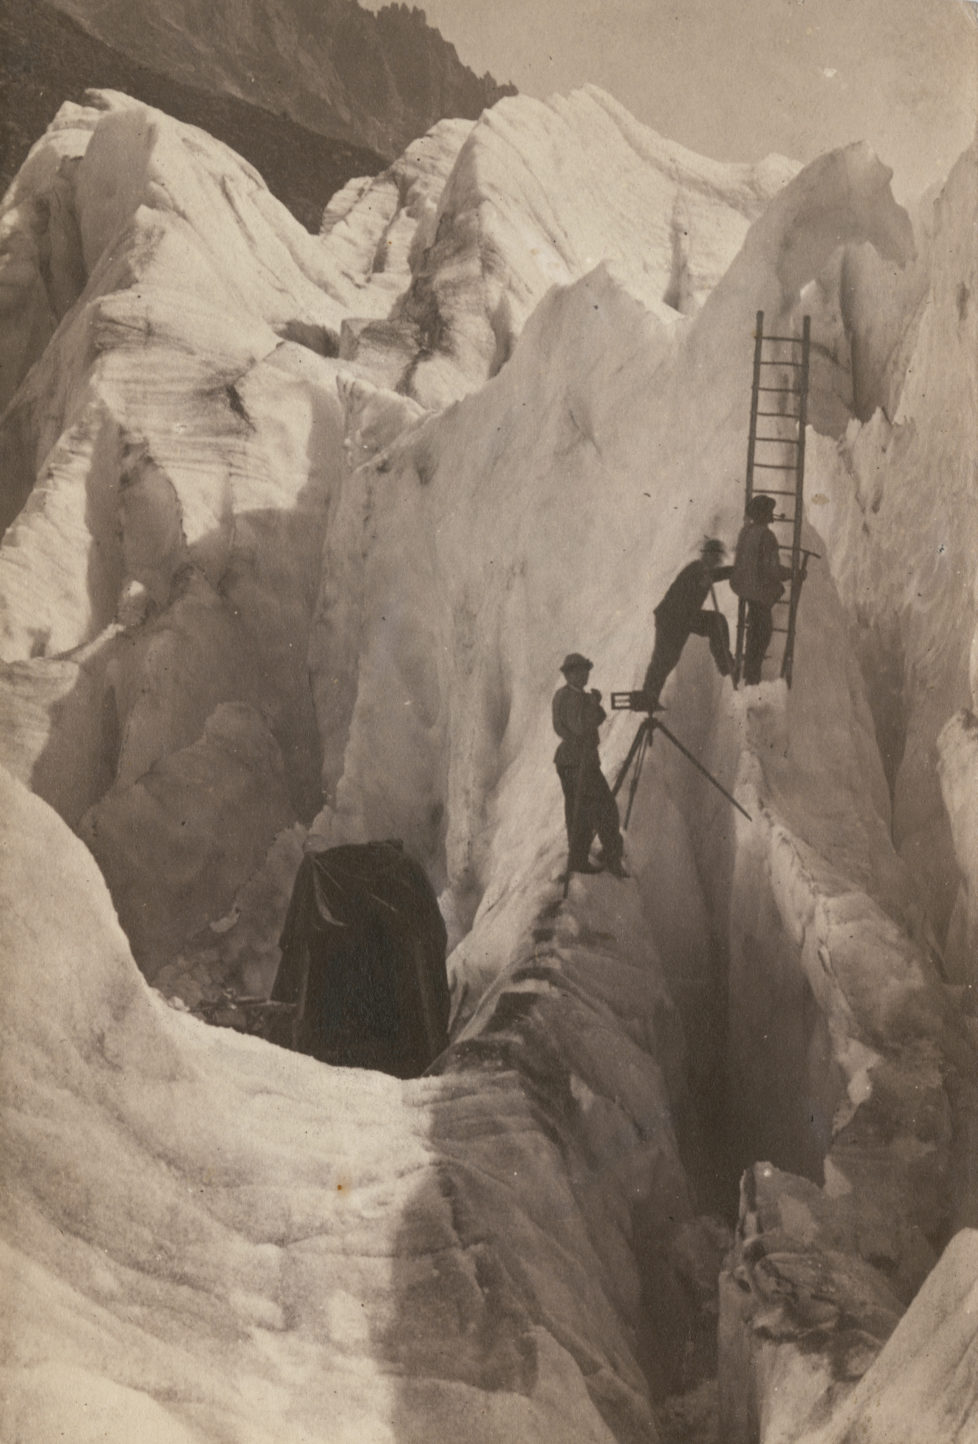 A photographer with his glass plate camera mounted on a tripod straddling a crevasse, and two assistants setting up a ladder, on a glacier in the Alps, circa 1880. The object on the left is possibly a light-proof tent used for coating and developing wet plates. (Photo by Hulton Archive/Getty Images)